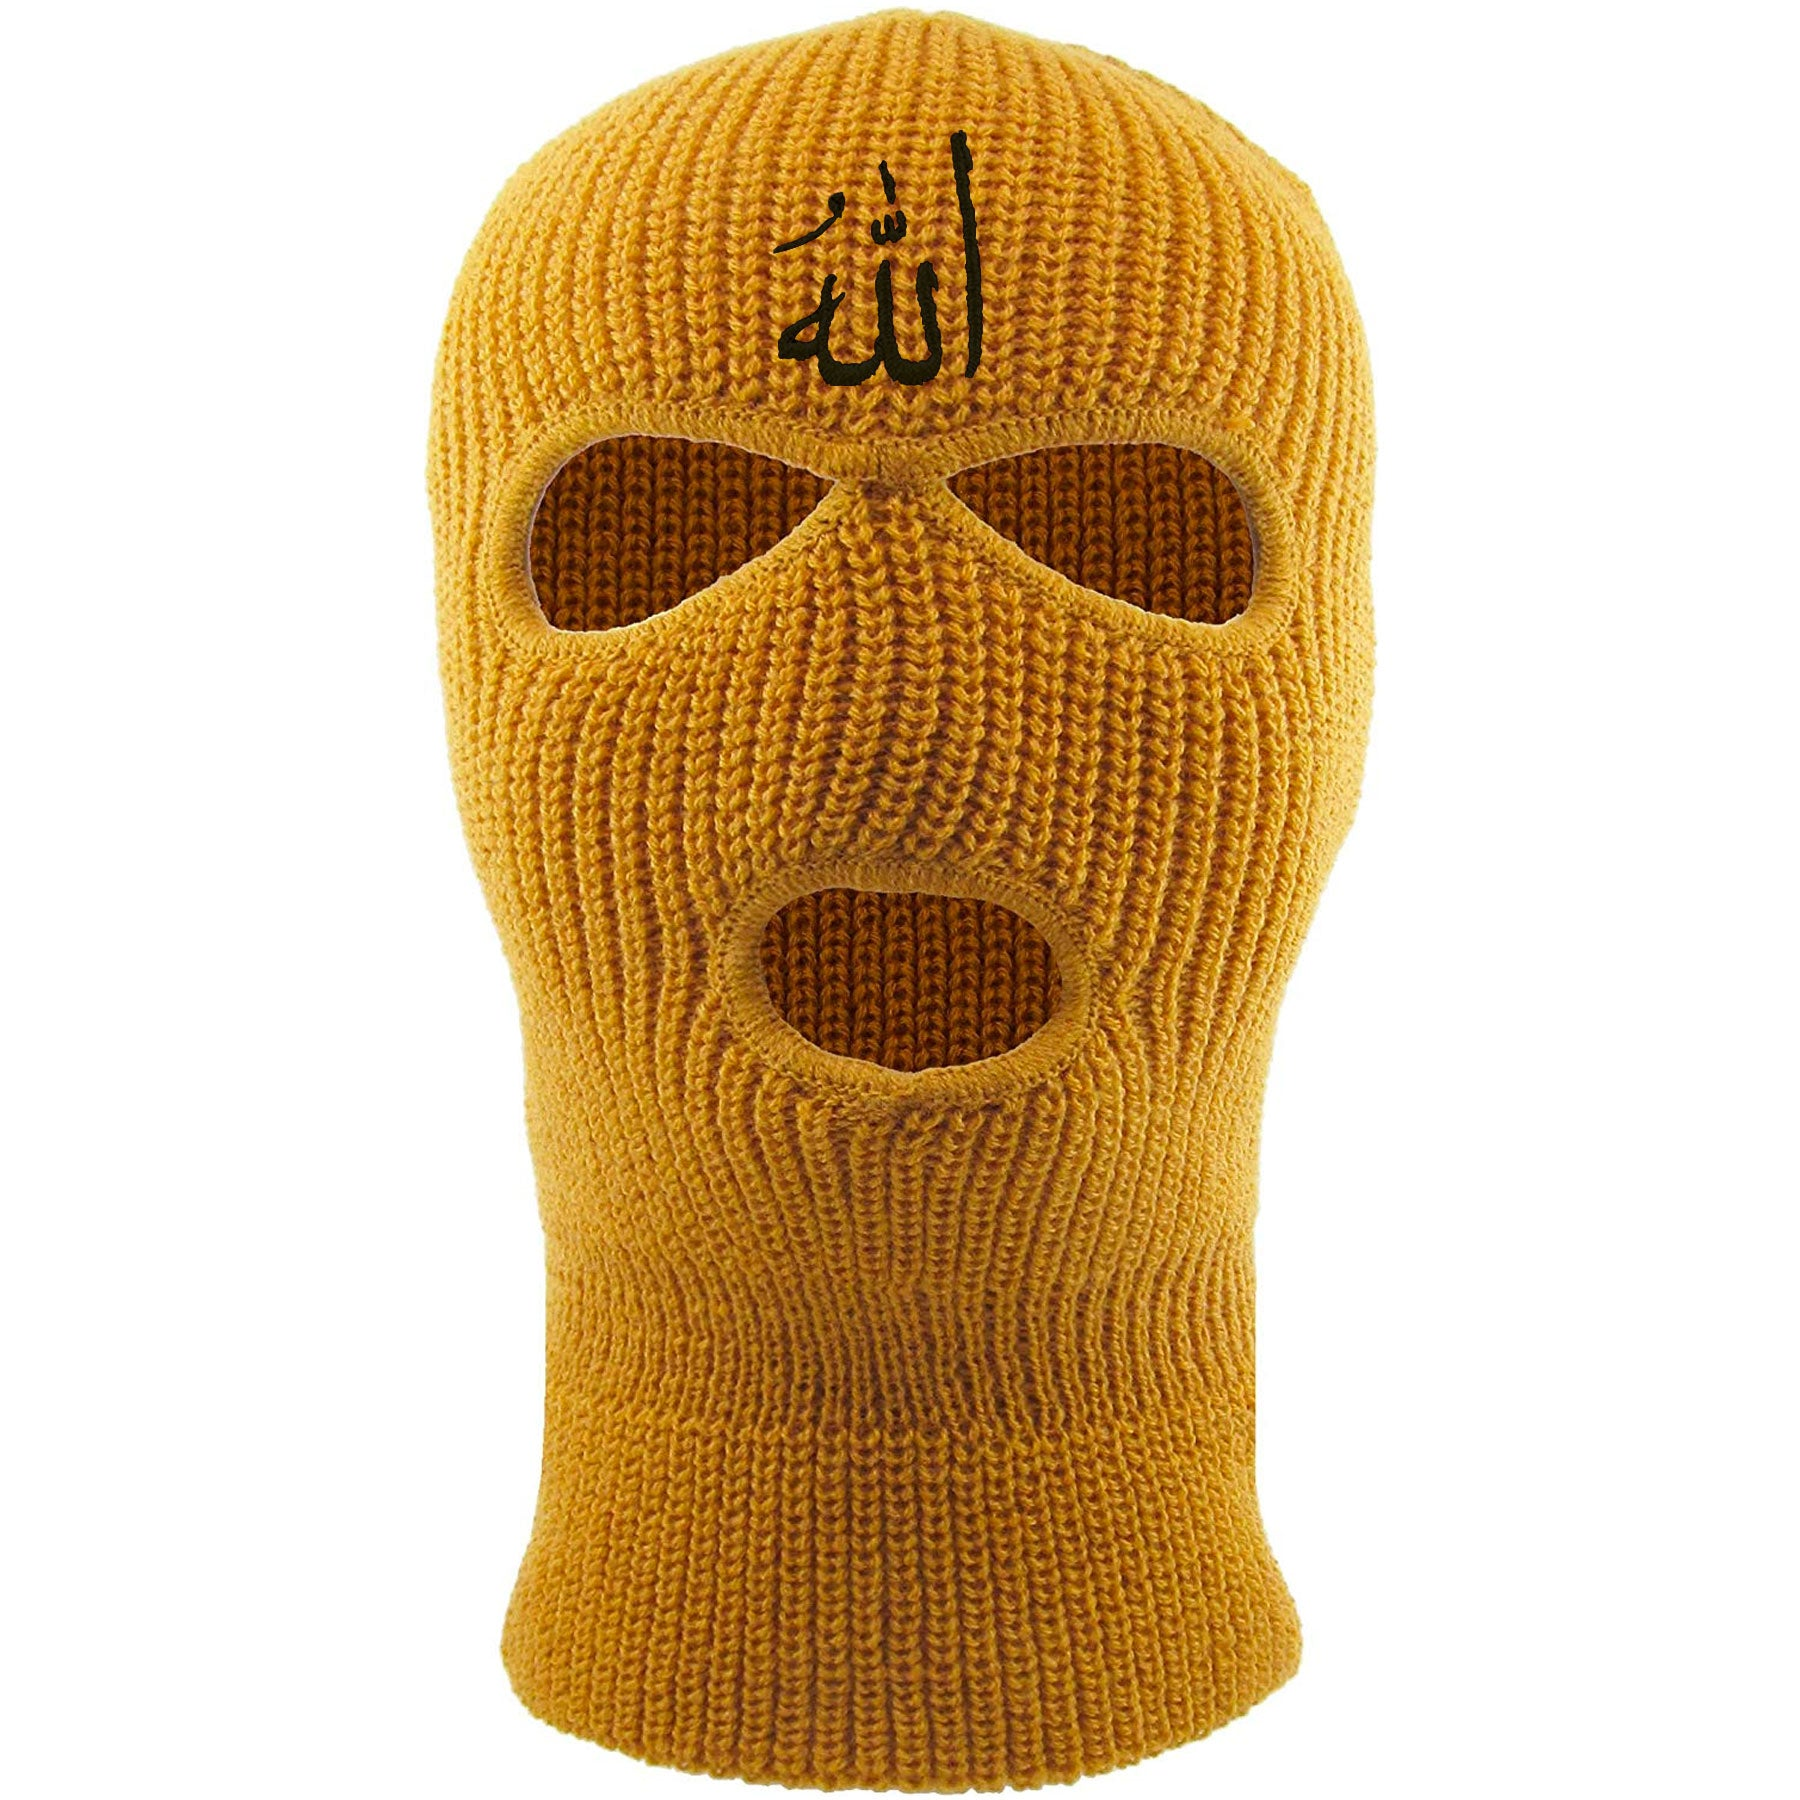 d6e8471cc29 Embroidered on the front of the timberland Allah ski mask is the arabic  writing for the